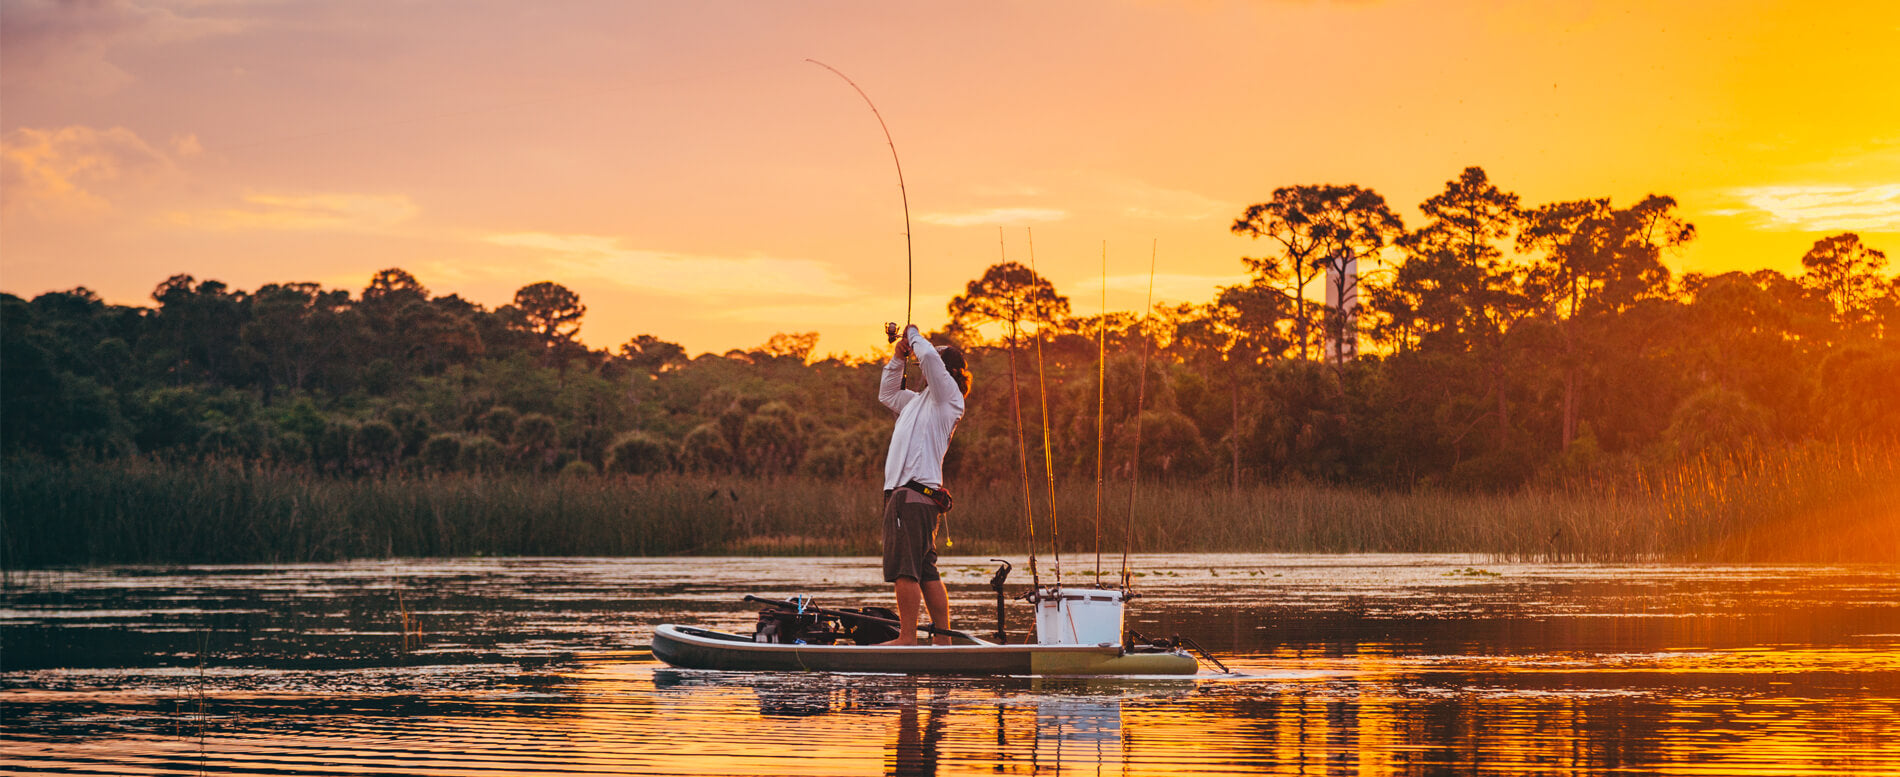 The best paddle board fishing accessories